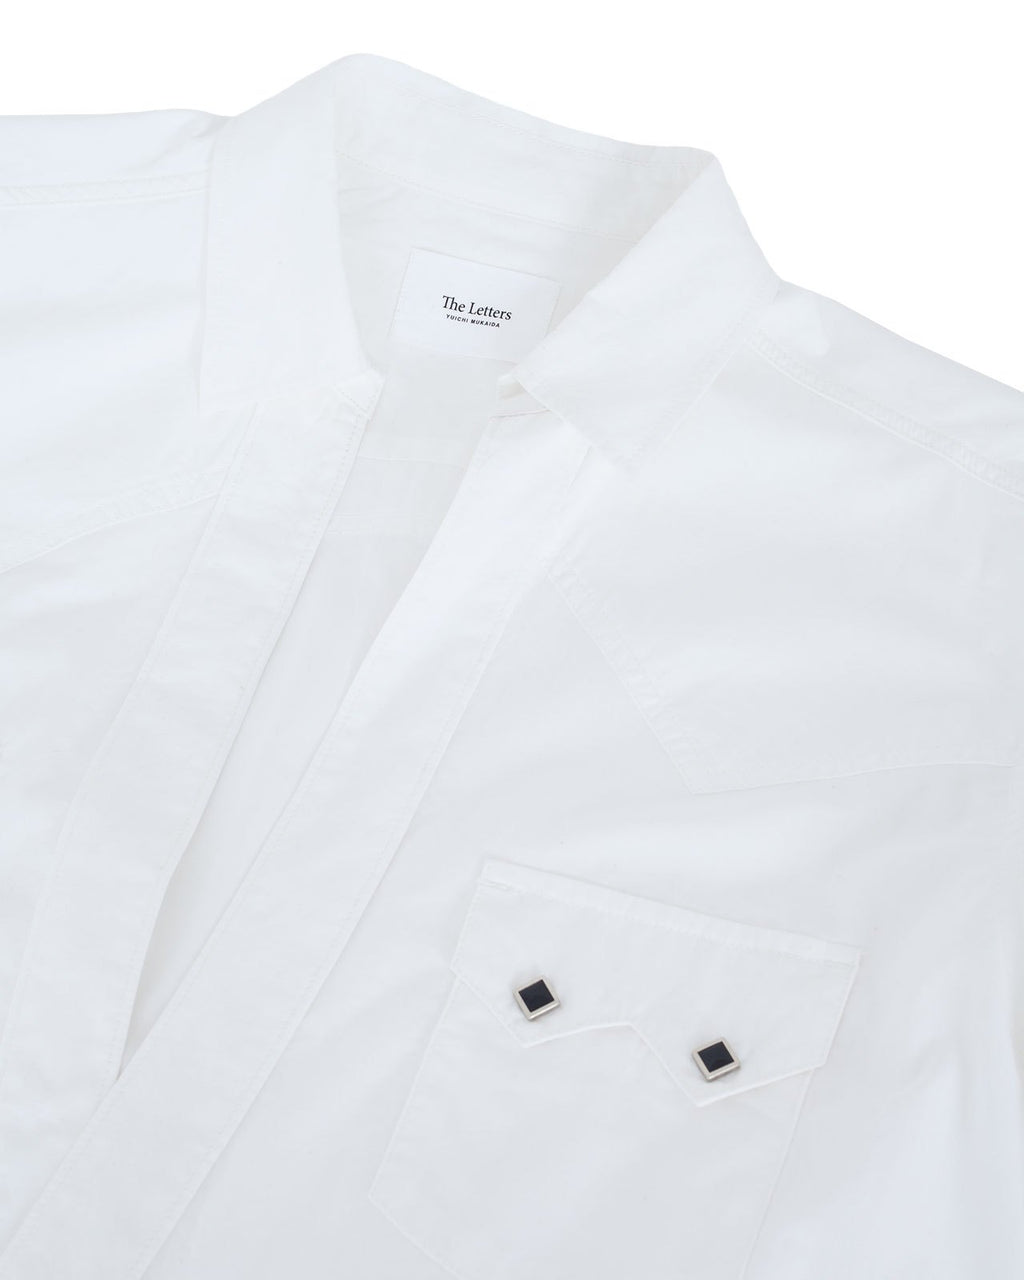 The Letters Western Cutting Shirt, Broad Cloth